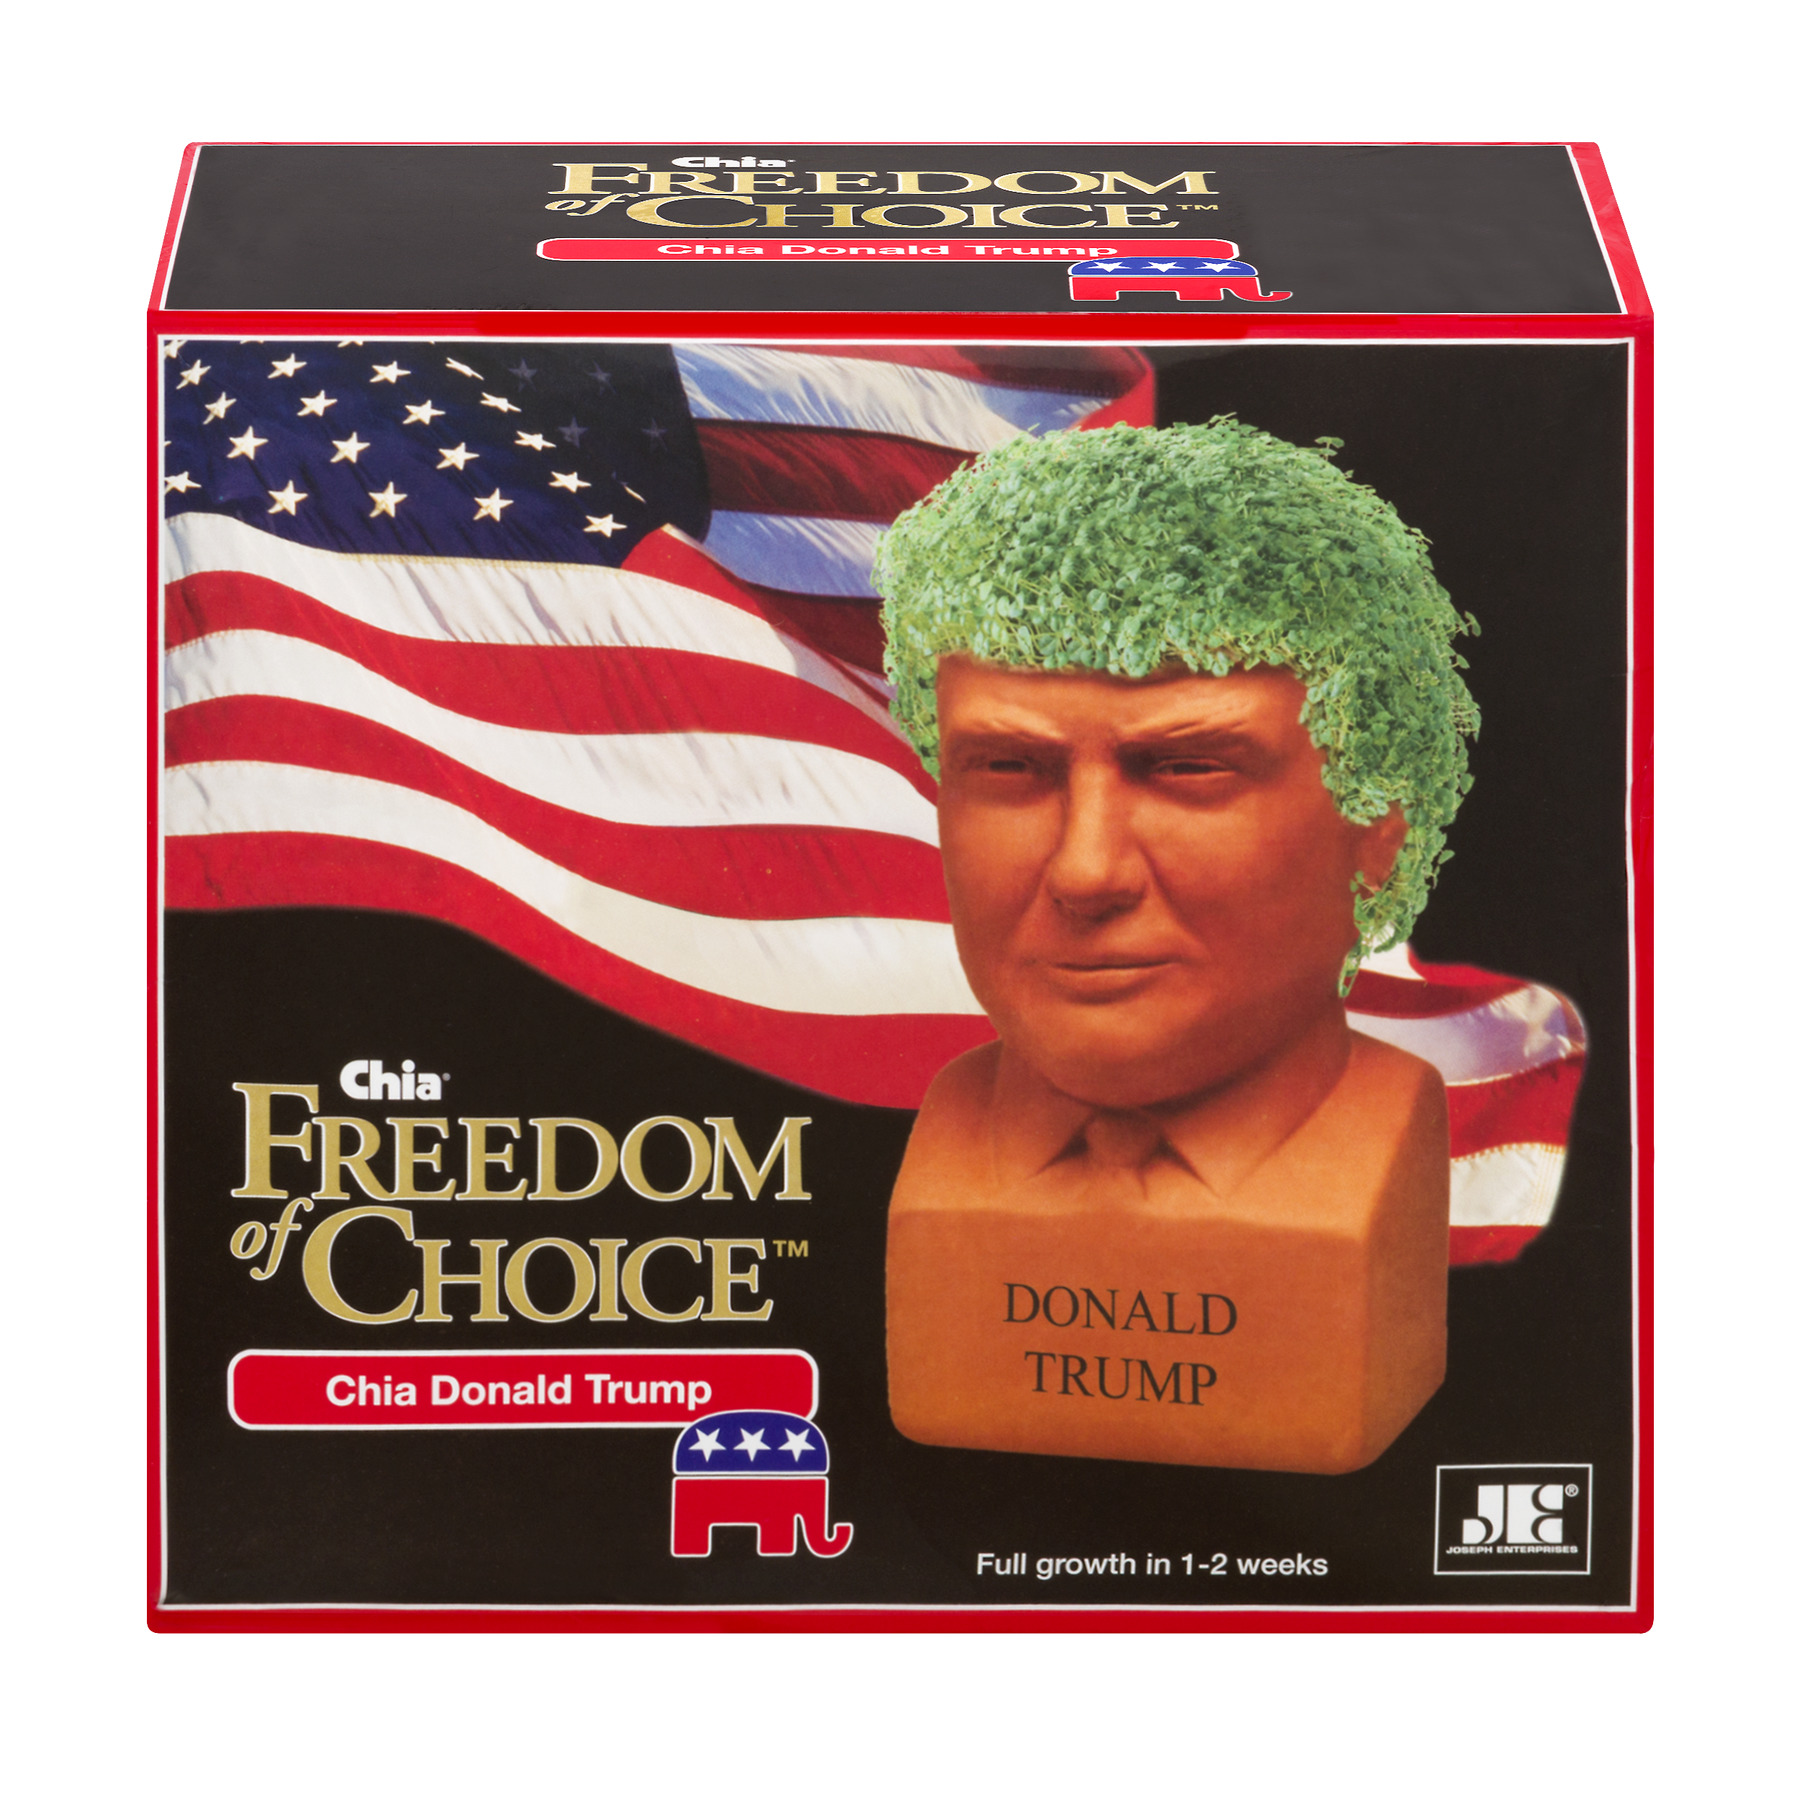 Chia Pet Donald Trump - Freedom of Choice Decorative Planter!